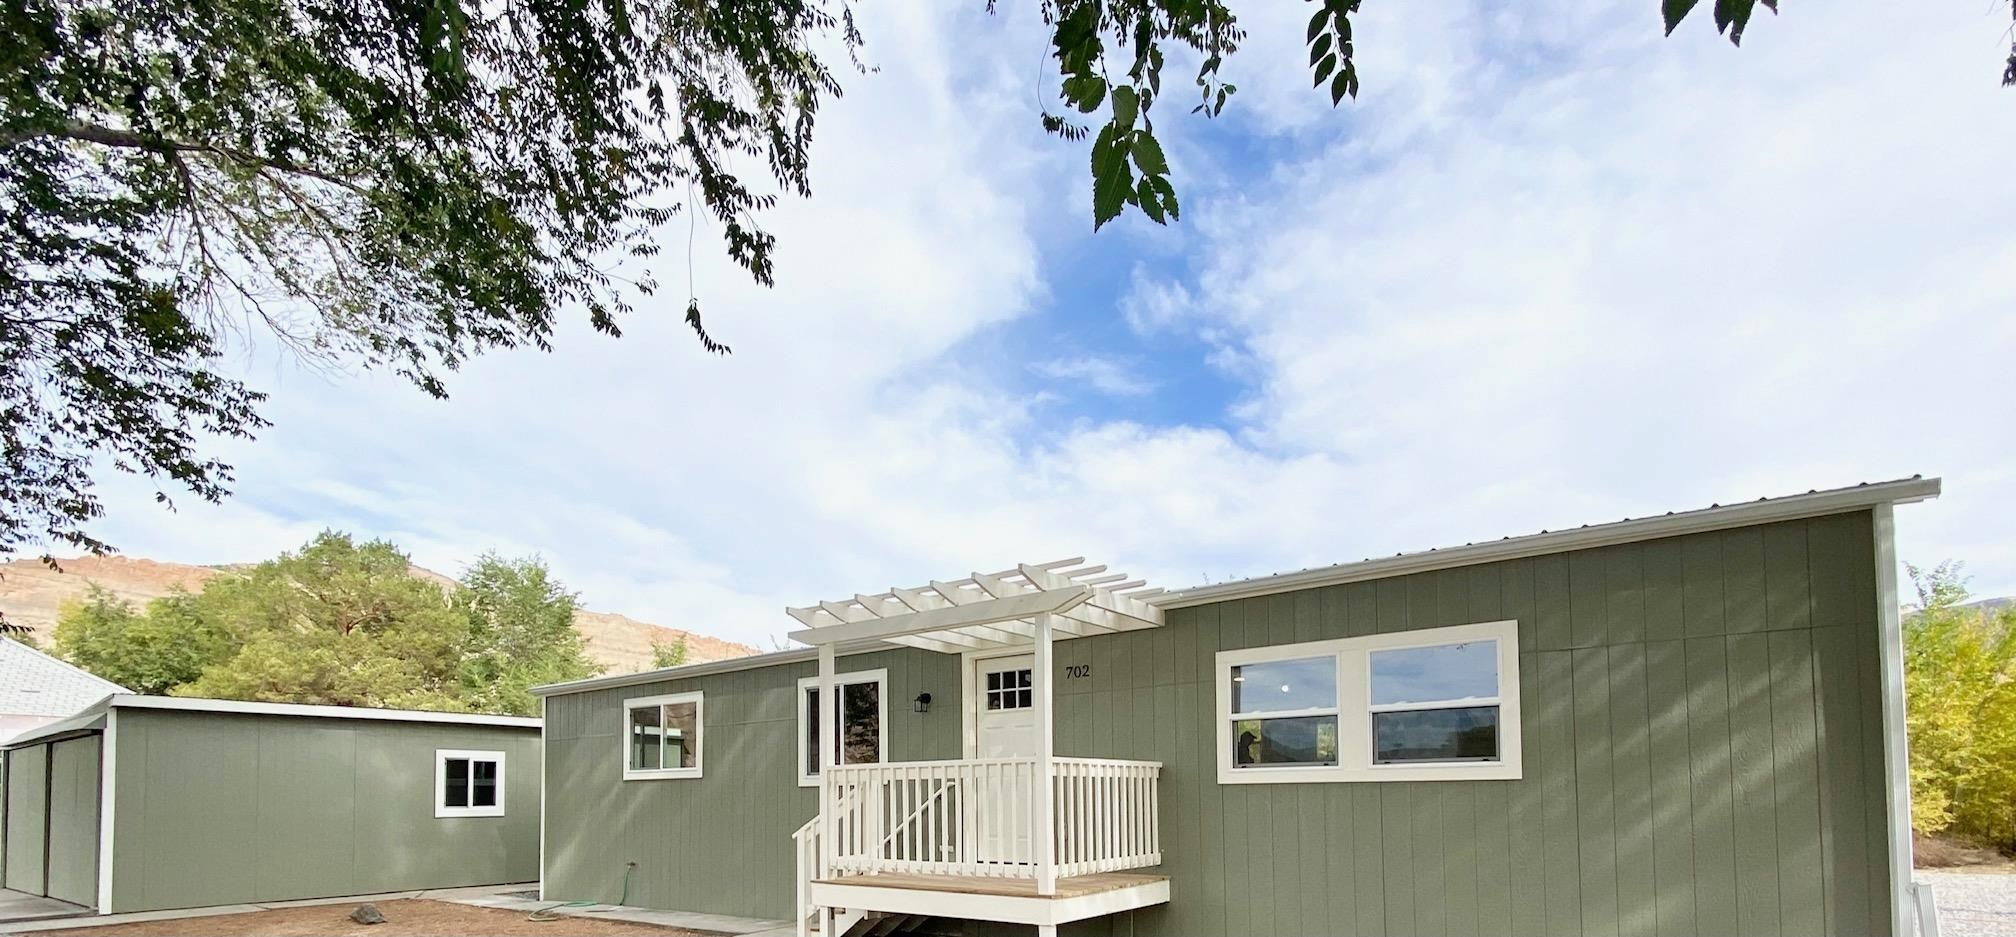 Adorable home completely renovated in 2020 in the heart of Palisade! Location is amazing, almost half an acre next to wineries and biking distance to Downtown Palisade. Tons of toy or RV parking. Upgrades include new roof, siding, HVAC, electrical, plumbing, floors and so much more! Don't miss out, schedule your private showing today.